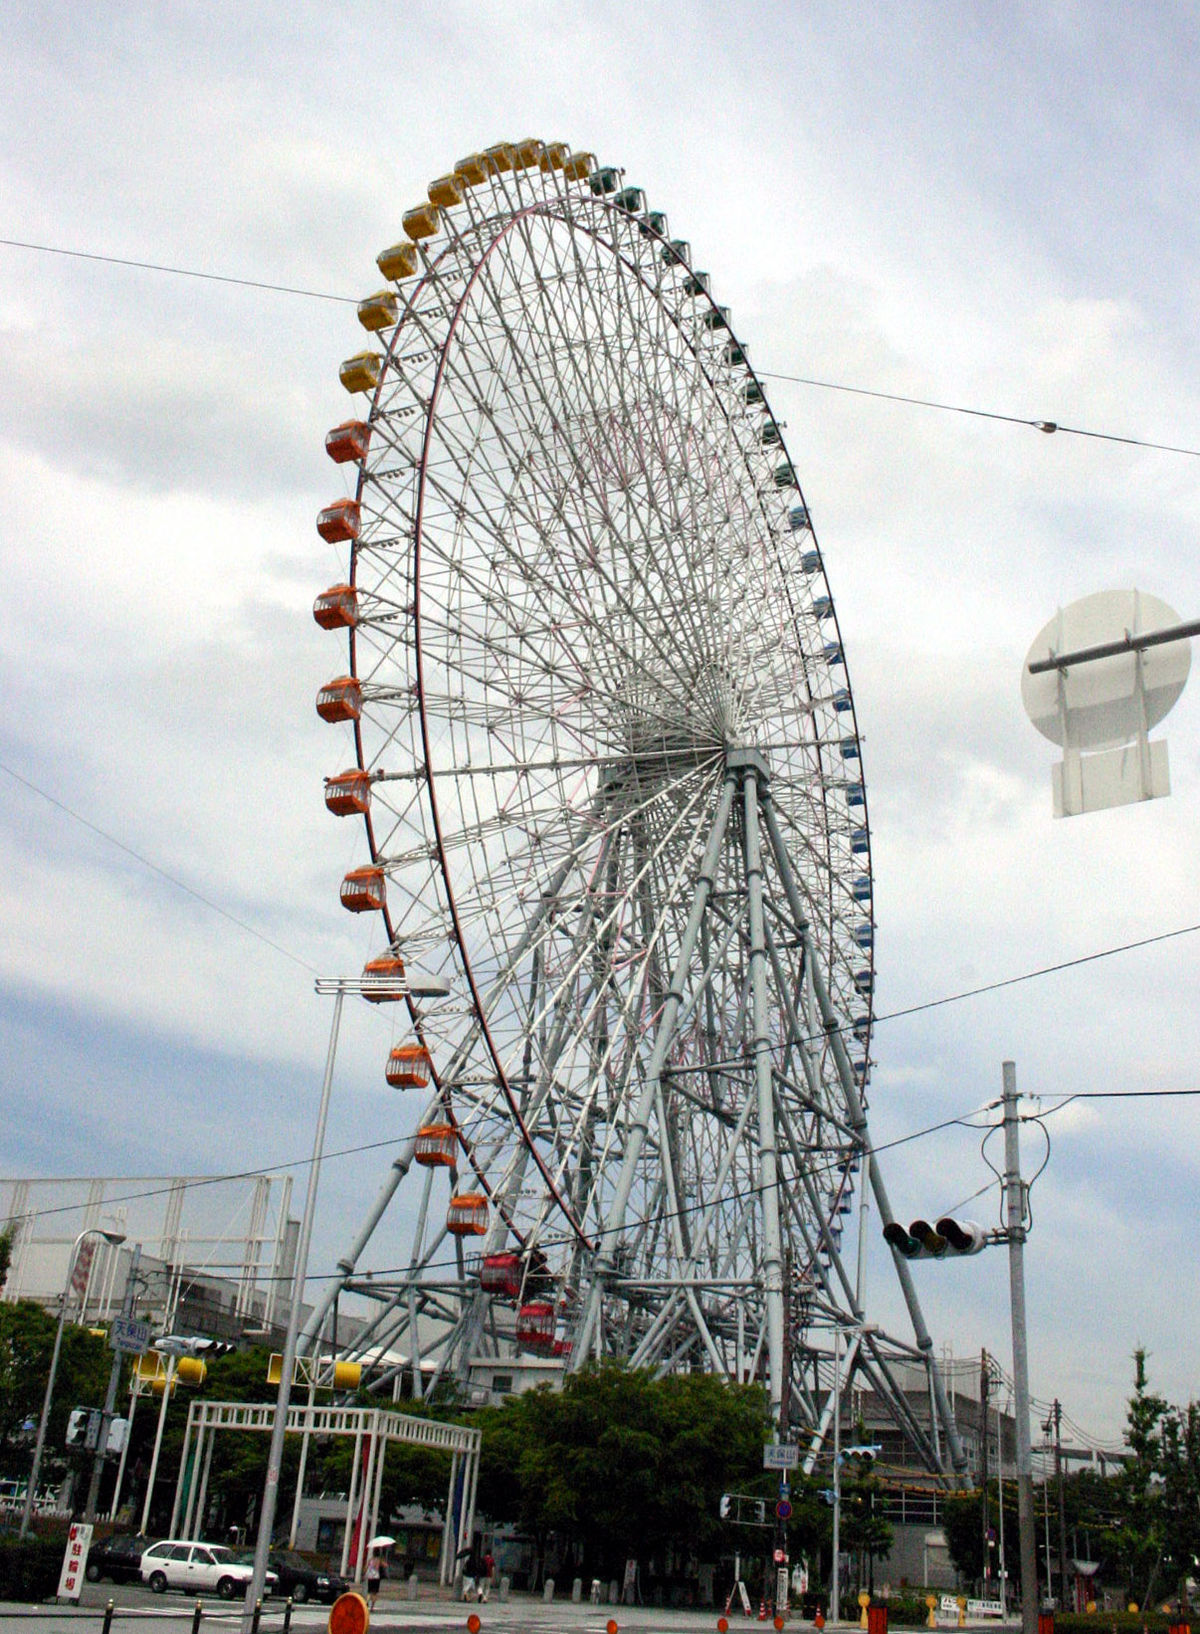 Tempozan Ferris Wheel - Wikipedia